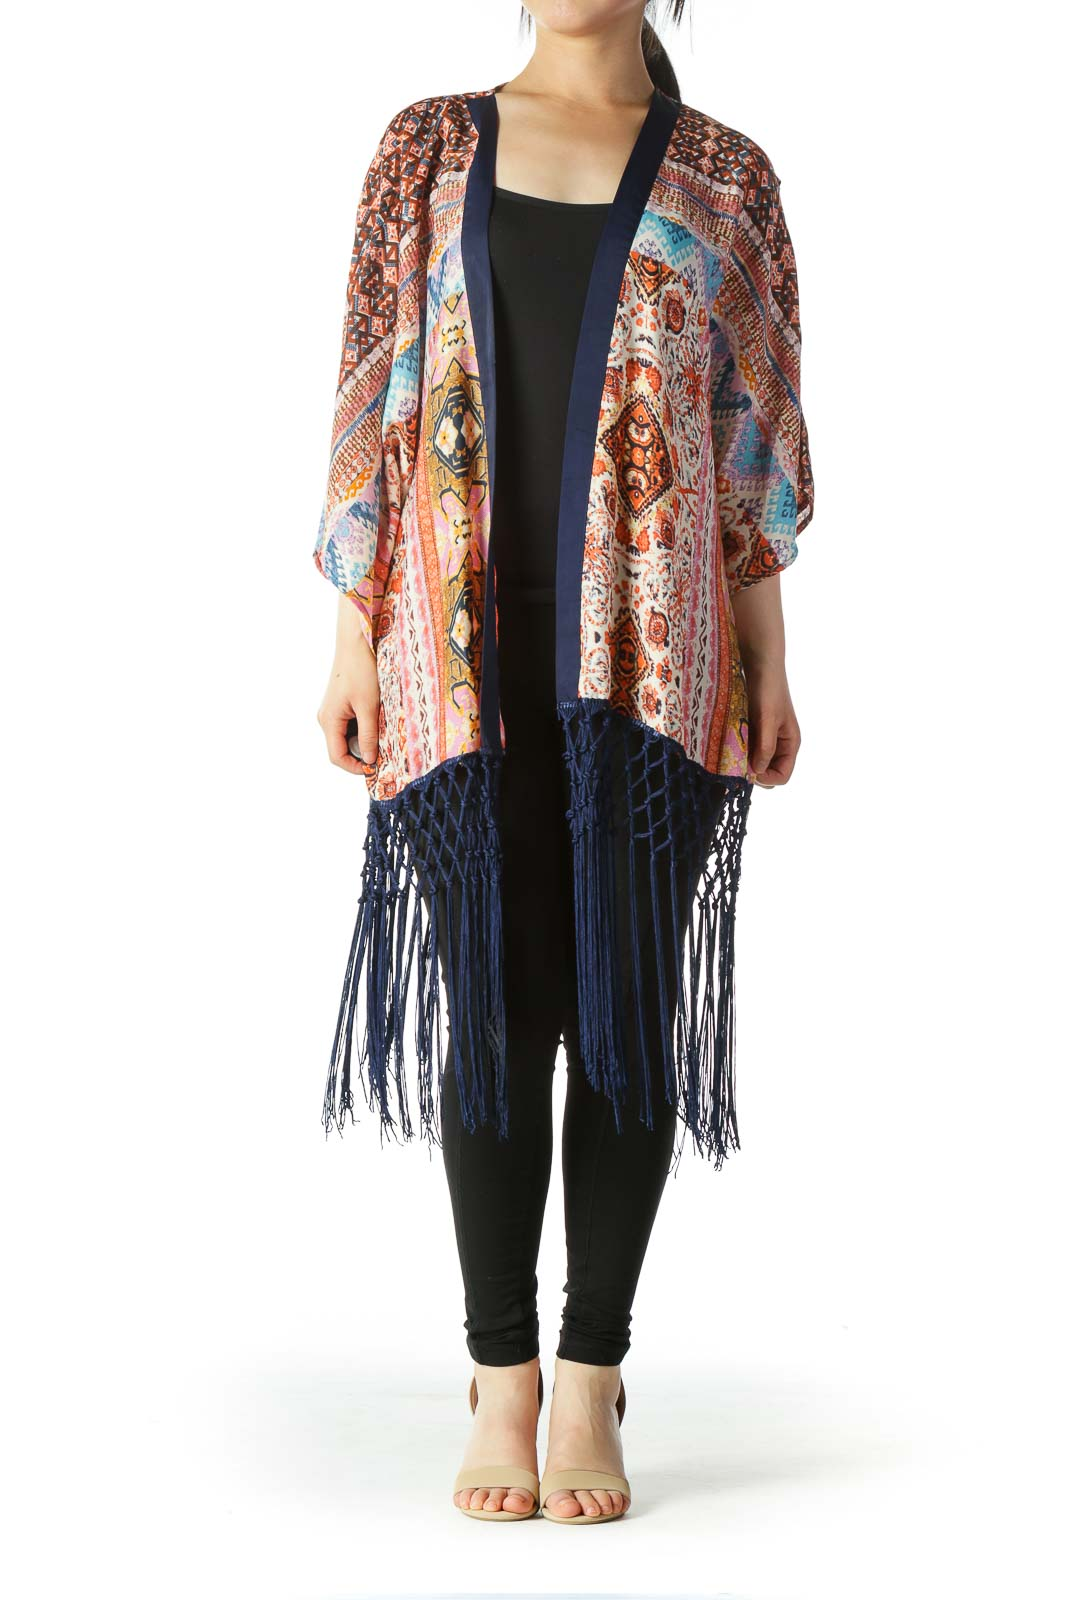 Multicolor Print Light-Weight Cardigan with Tassels